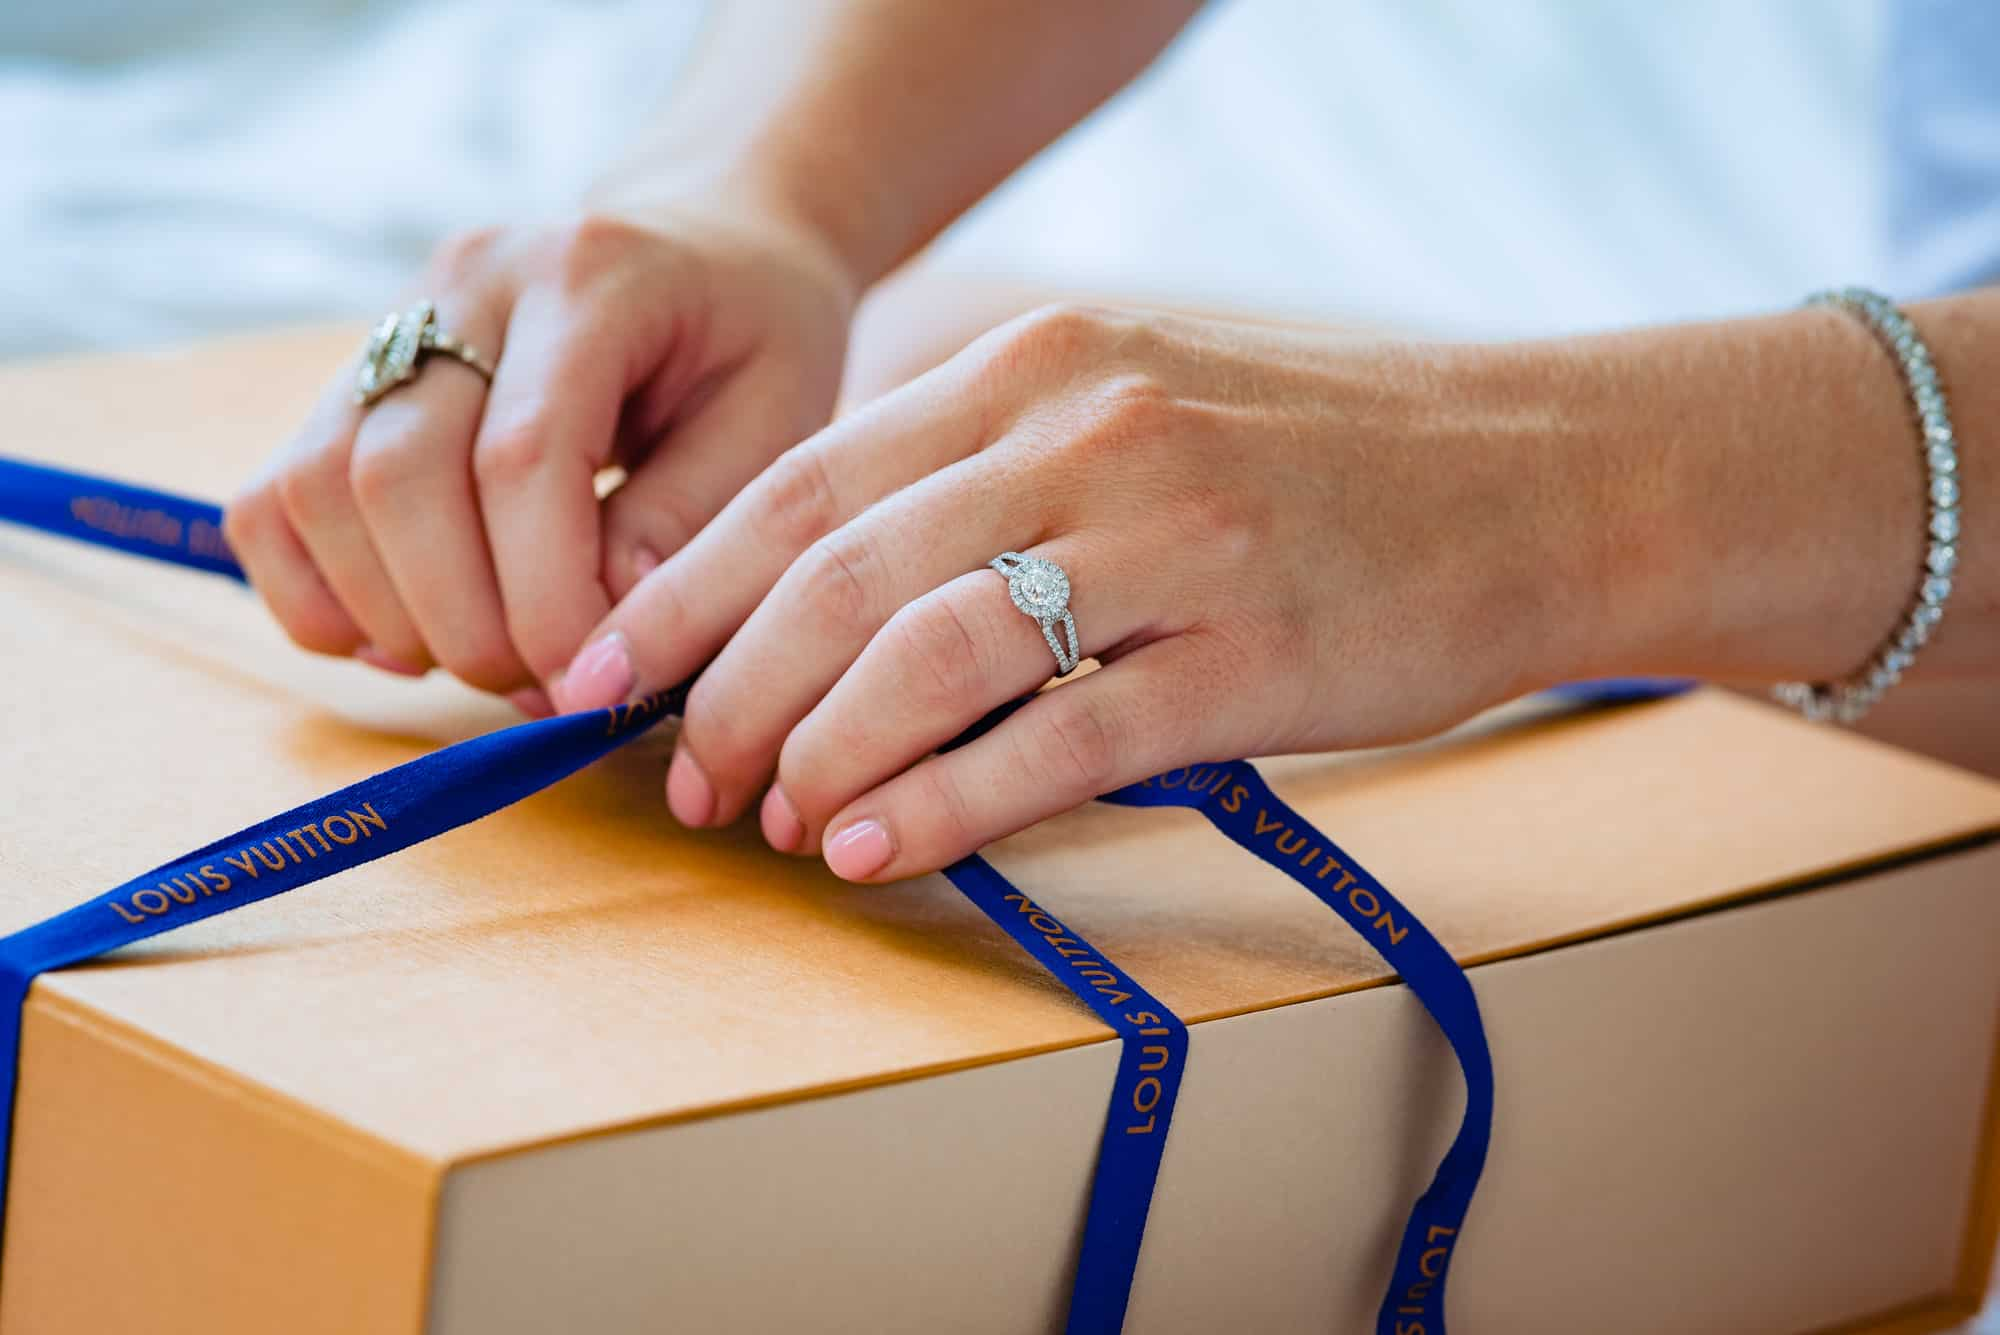 getting ready, close up of brides engagement ring and hands while opening up a Louis Vuitton present box